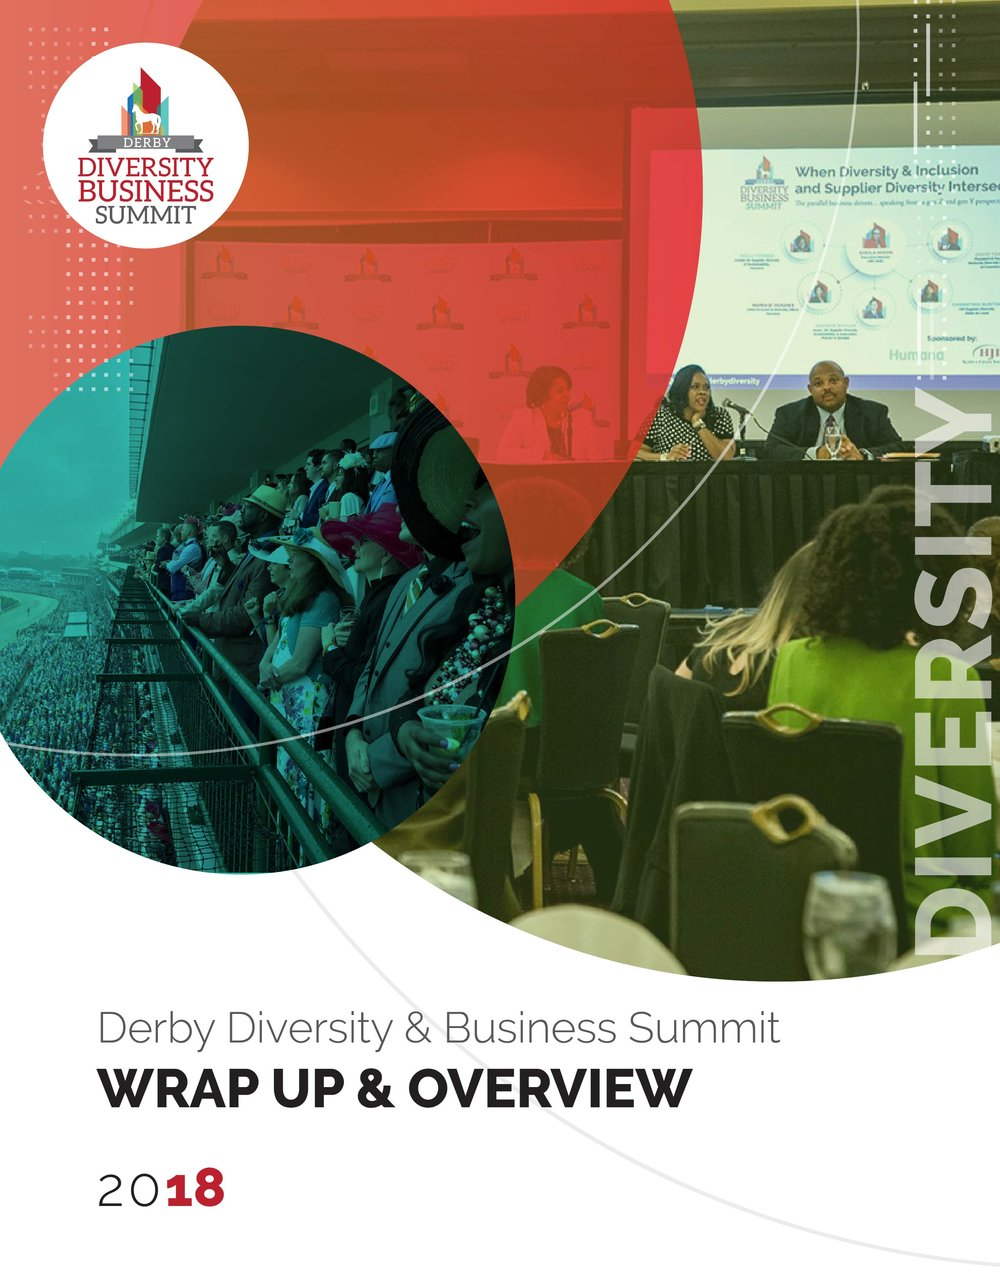 Check out last year's wrap-up booklet -